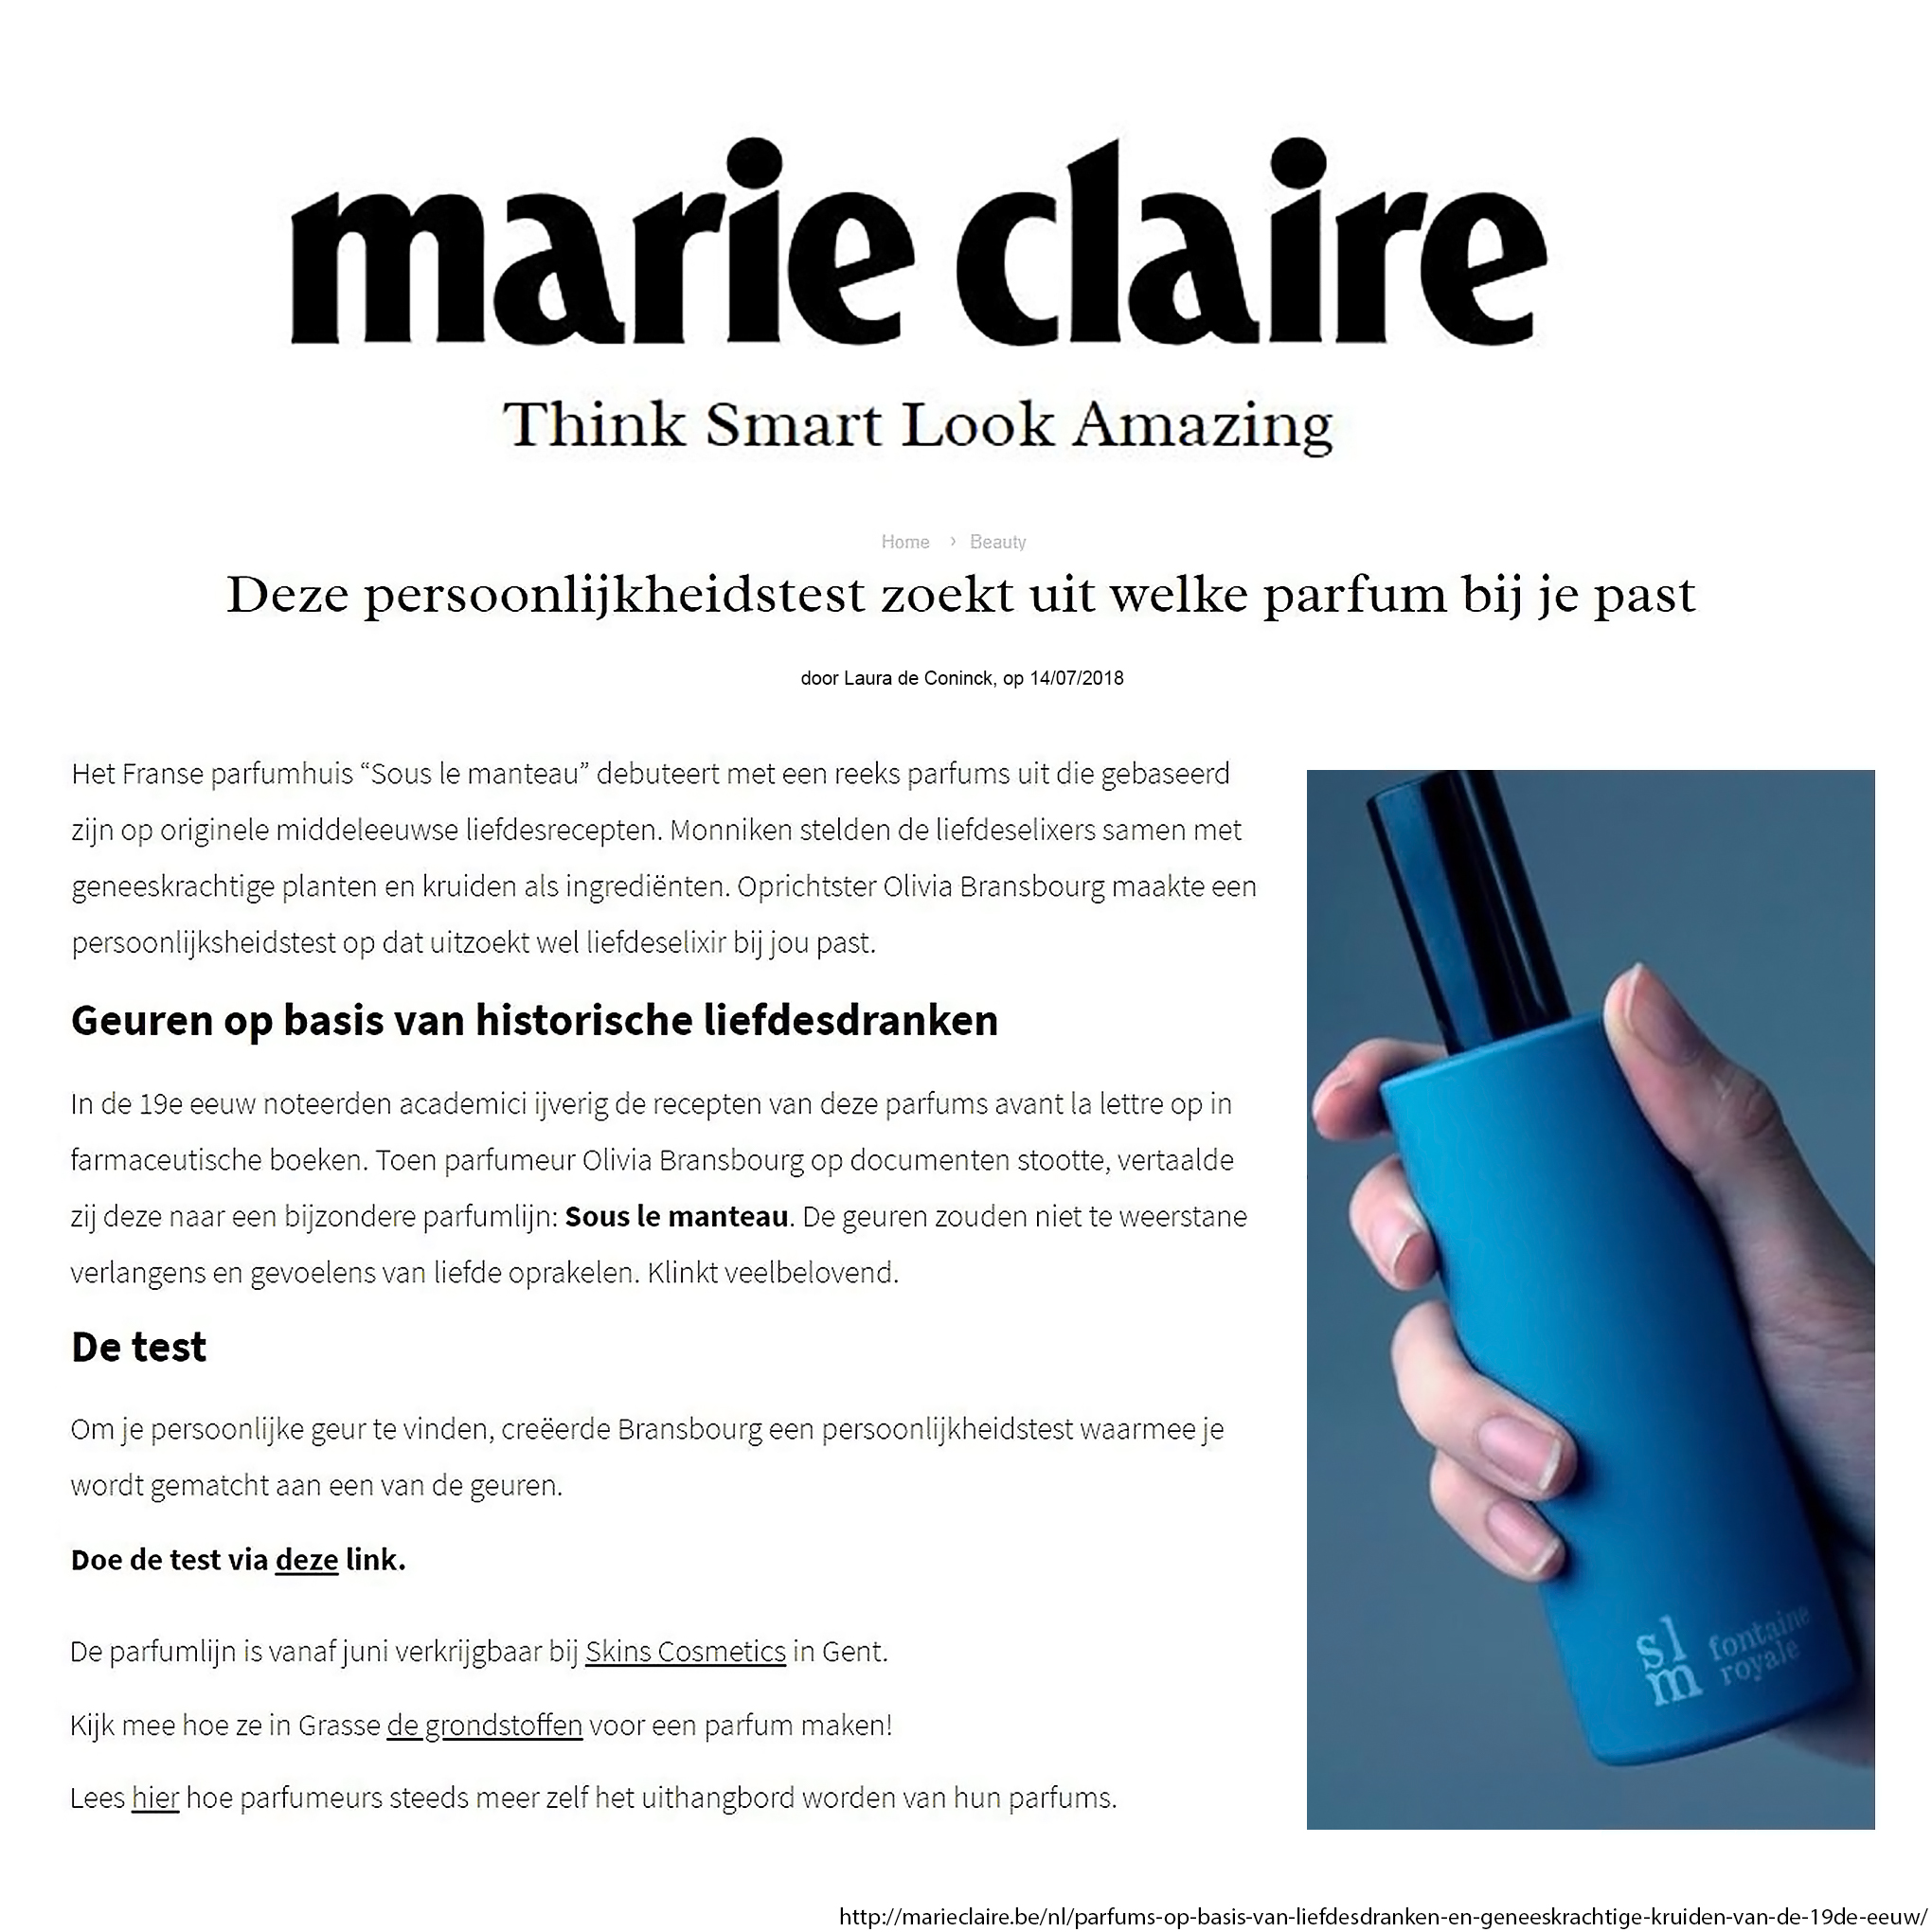 20180714 marie claire article square.jpg